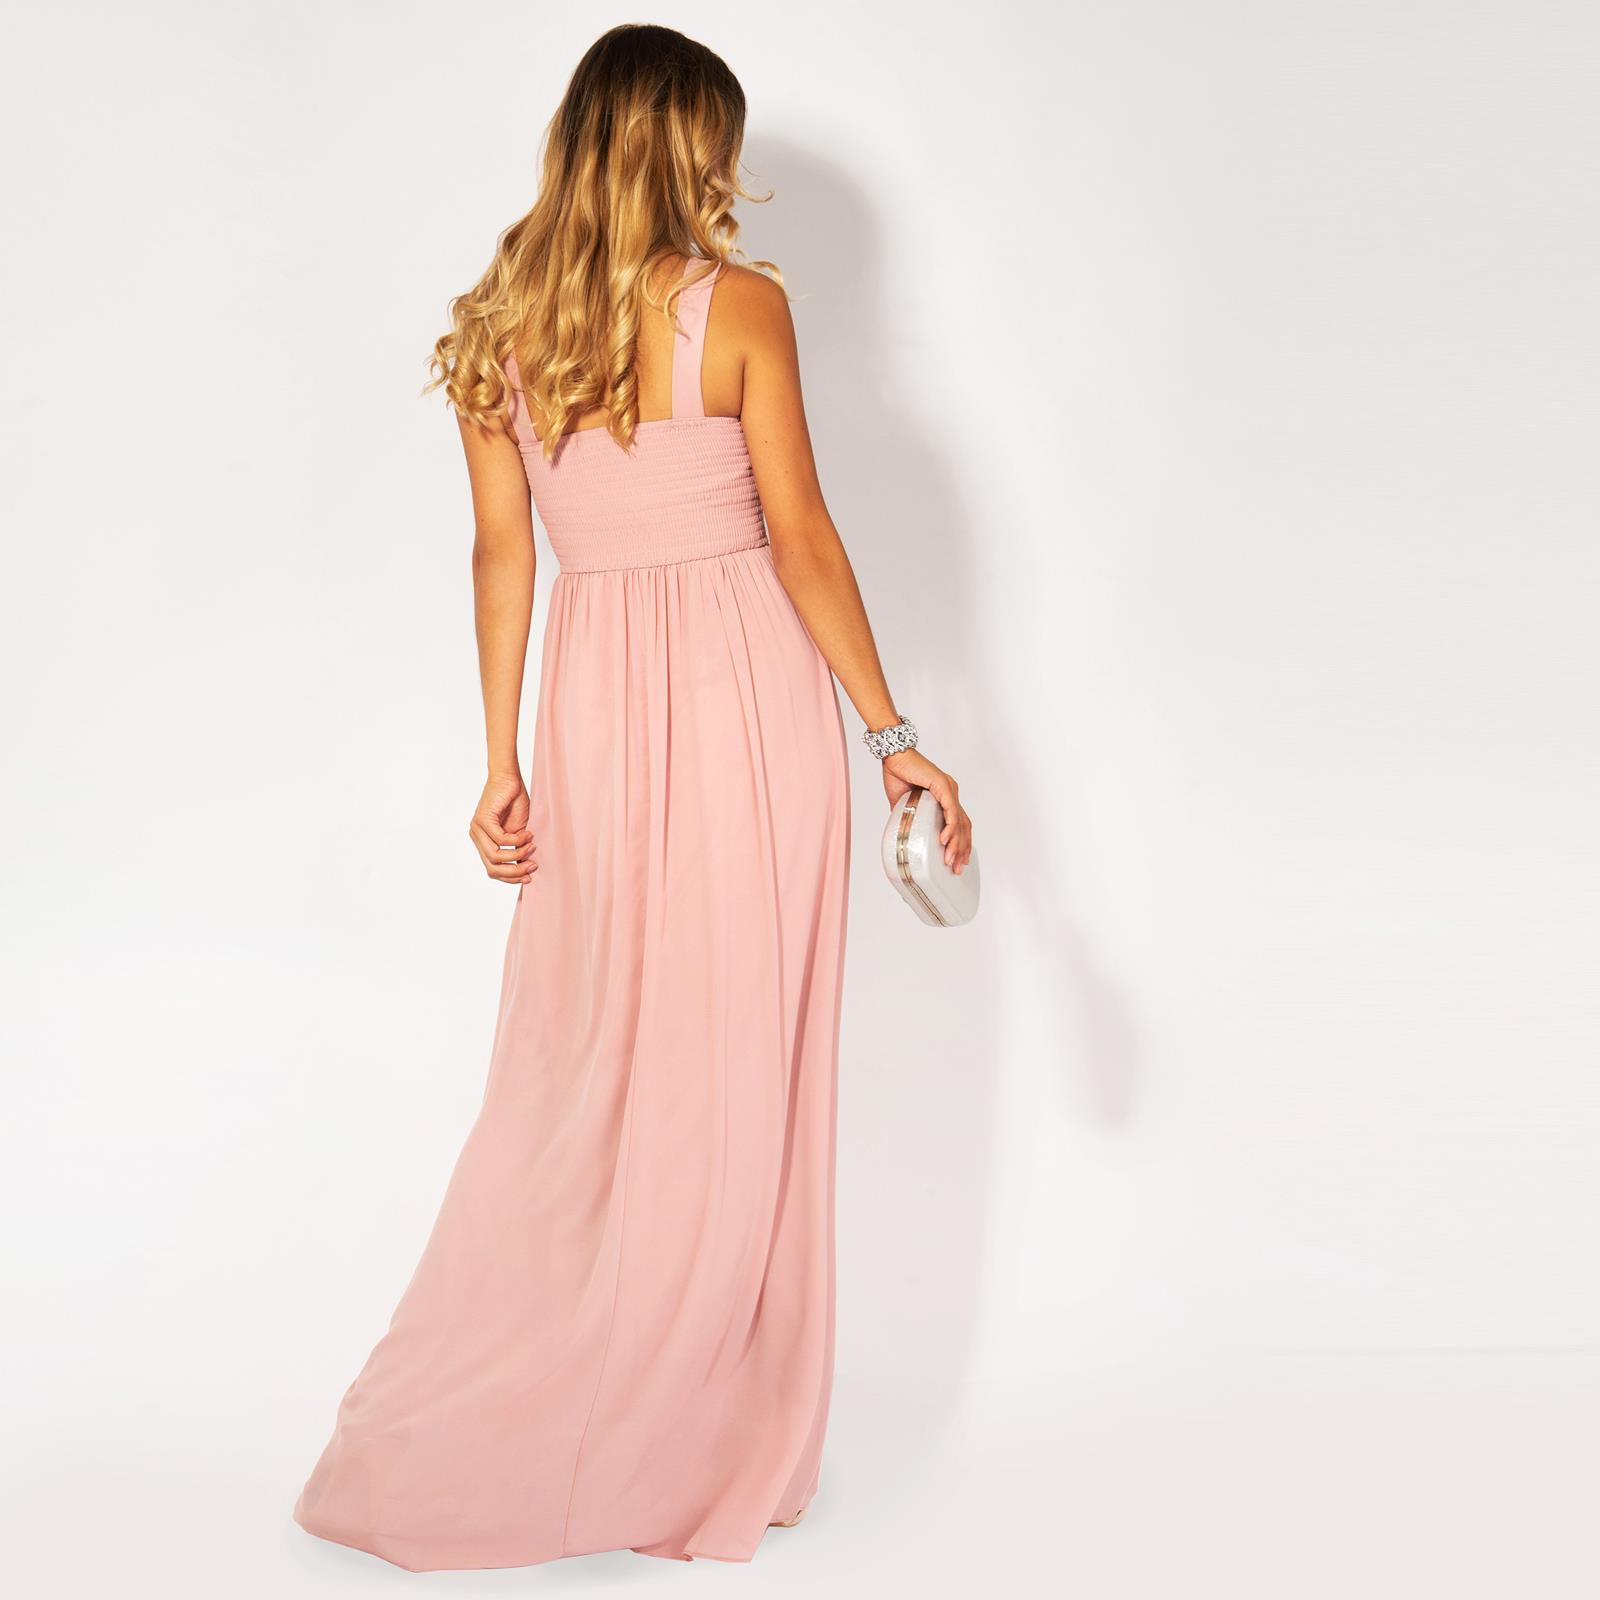 Womens-Formal-Maxi-Wedding-Bridesmaid-Prom-Dress-Cocktail-Long-Ball-Gown-Party thumbnail 4